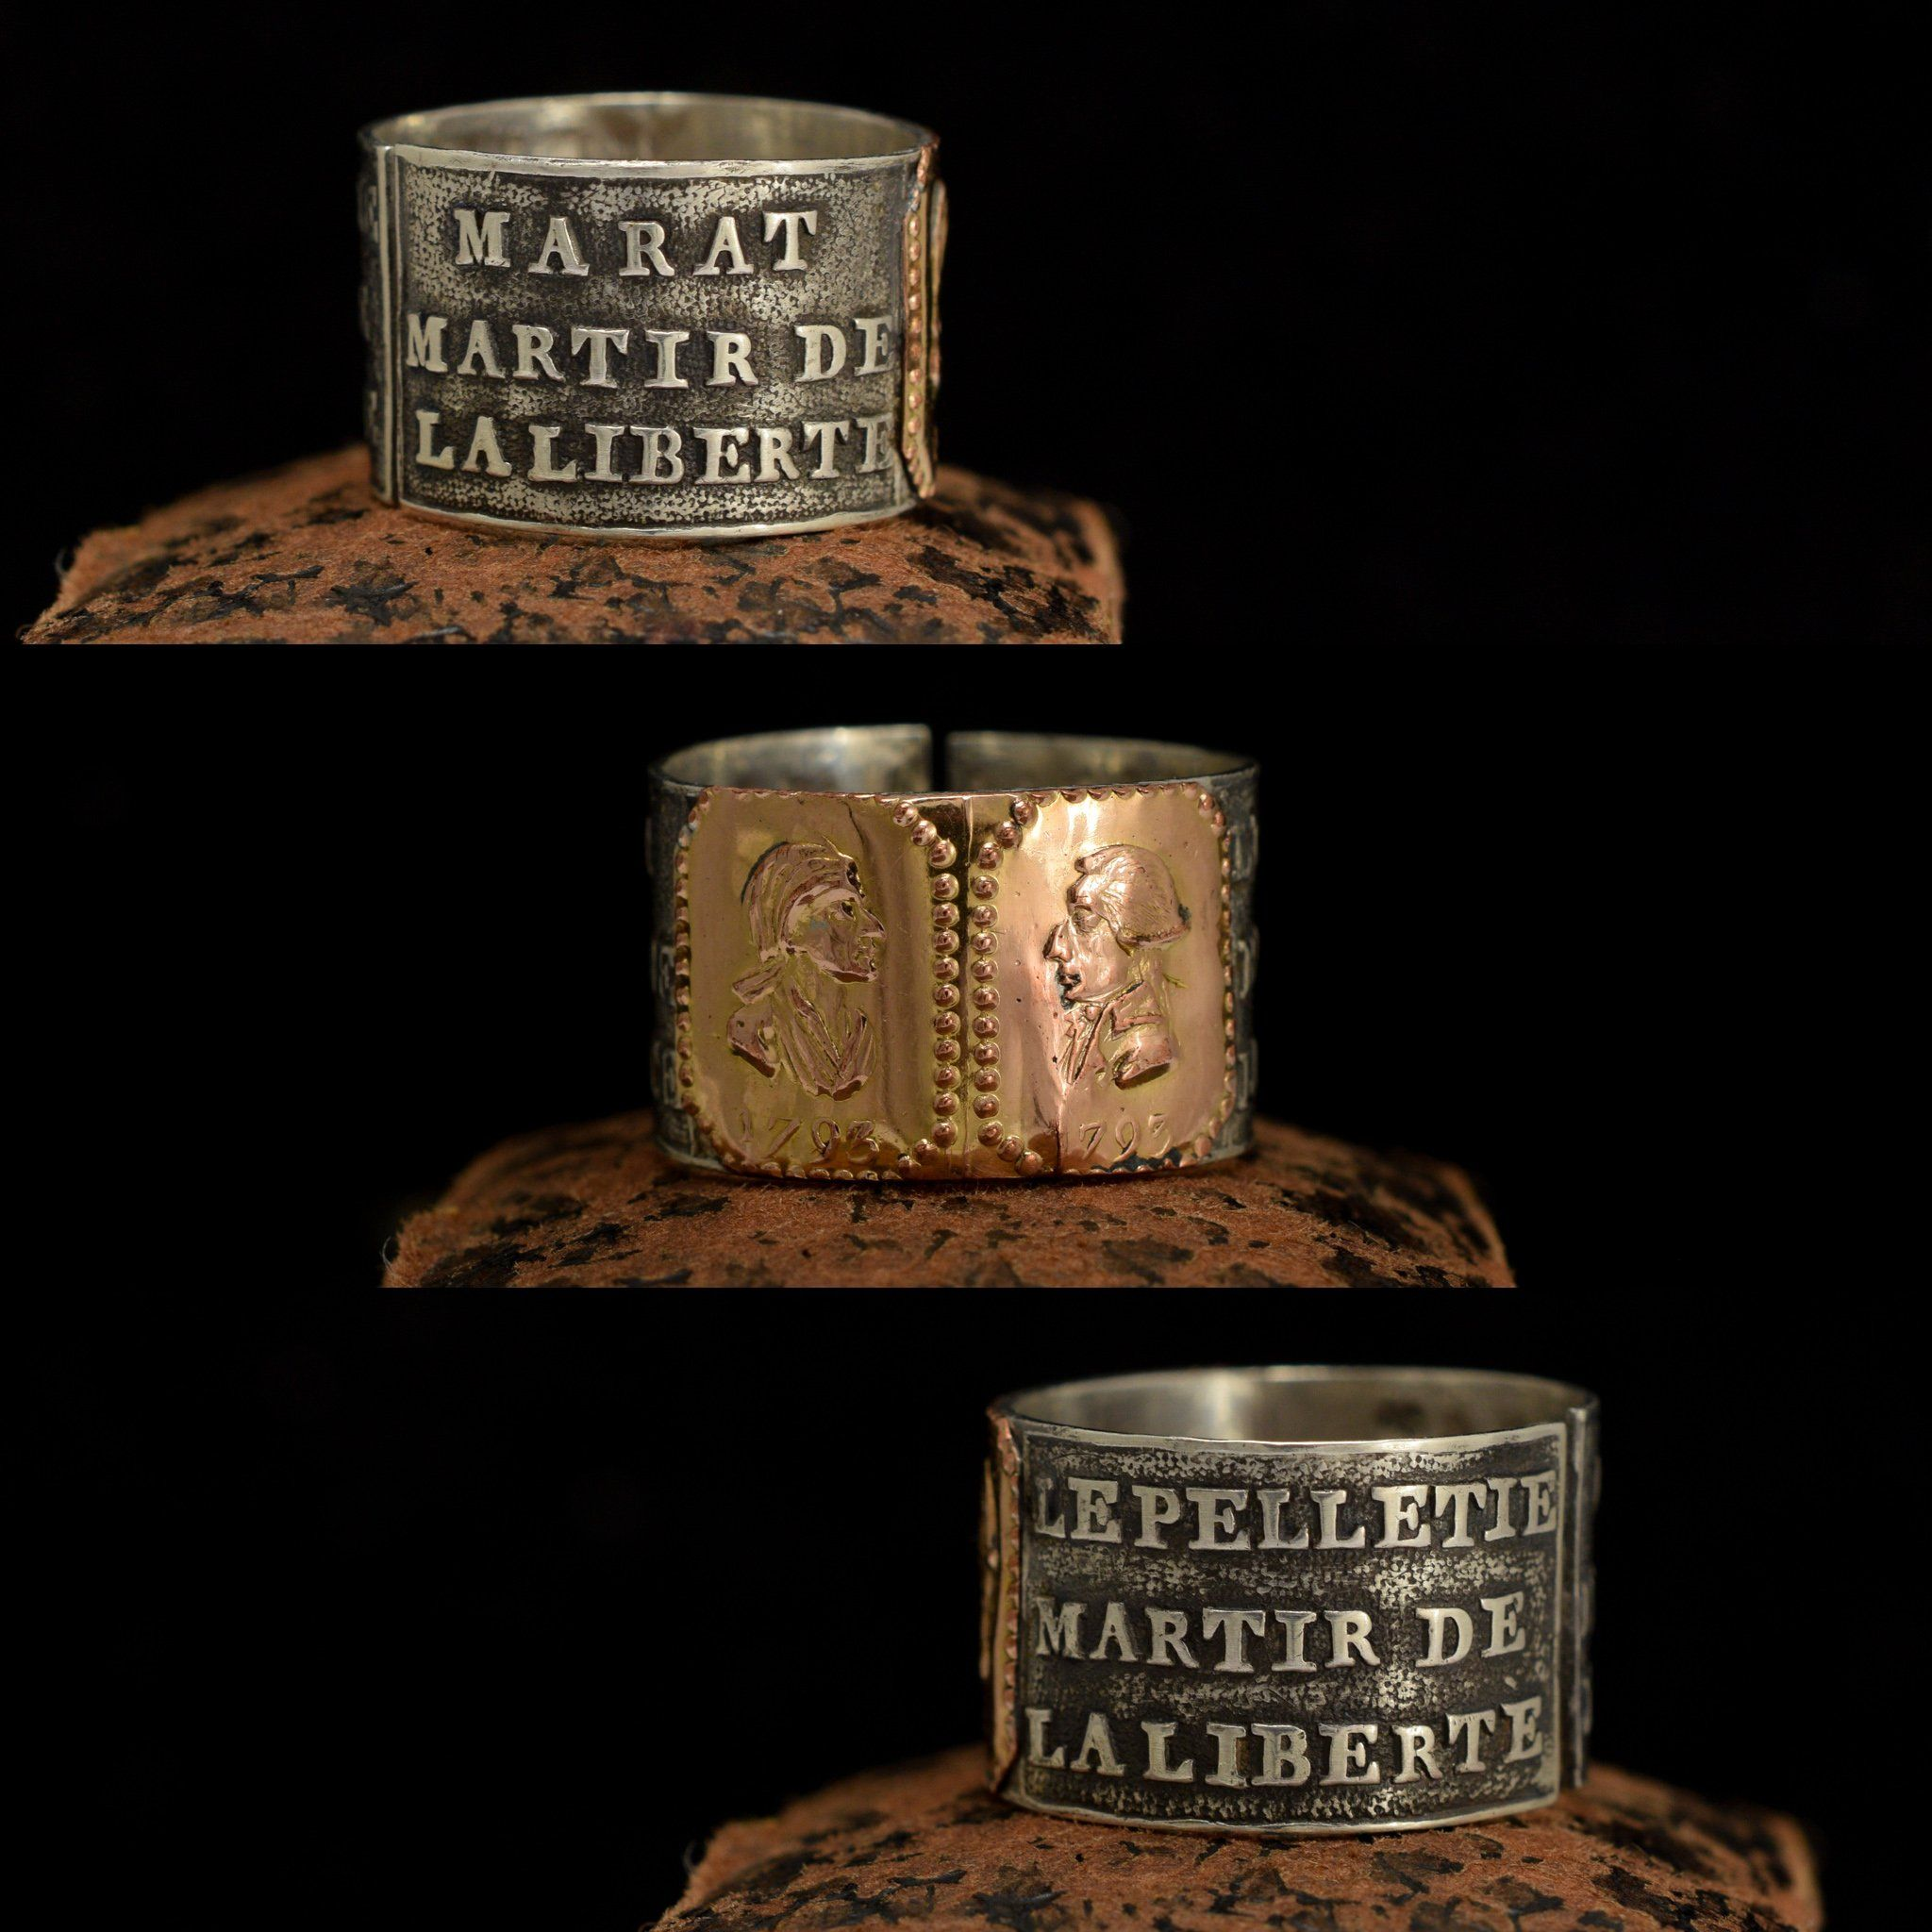 1793 French Revolution Mourning Ring for Marat and Le Peletier